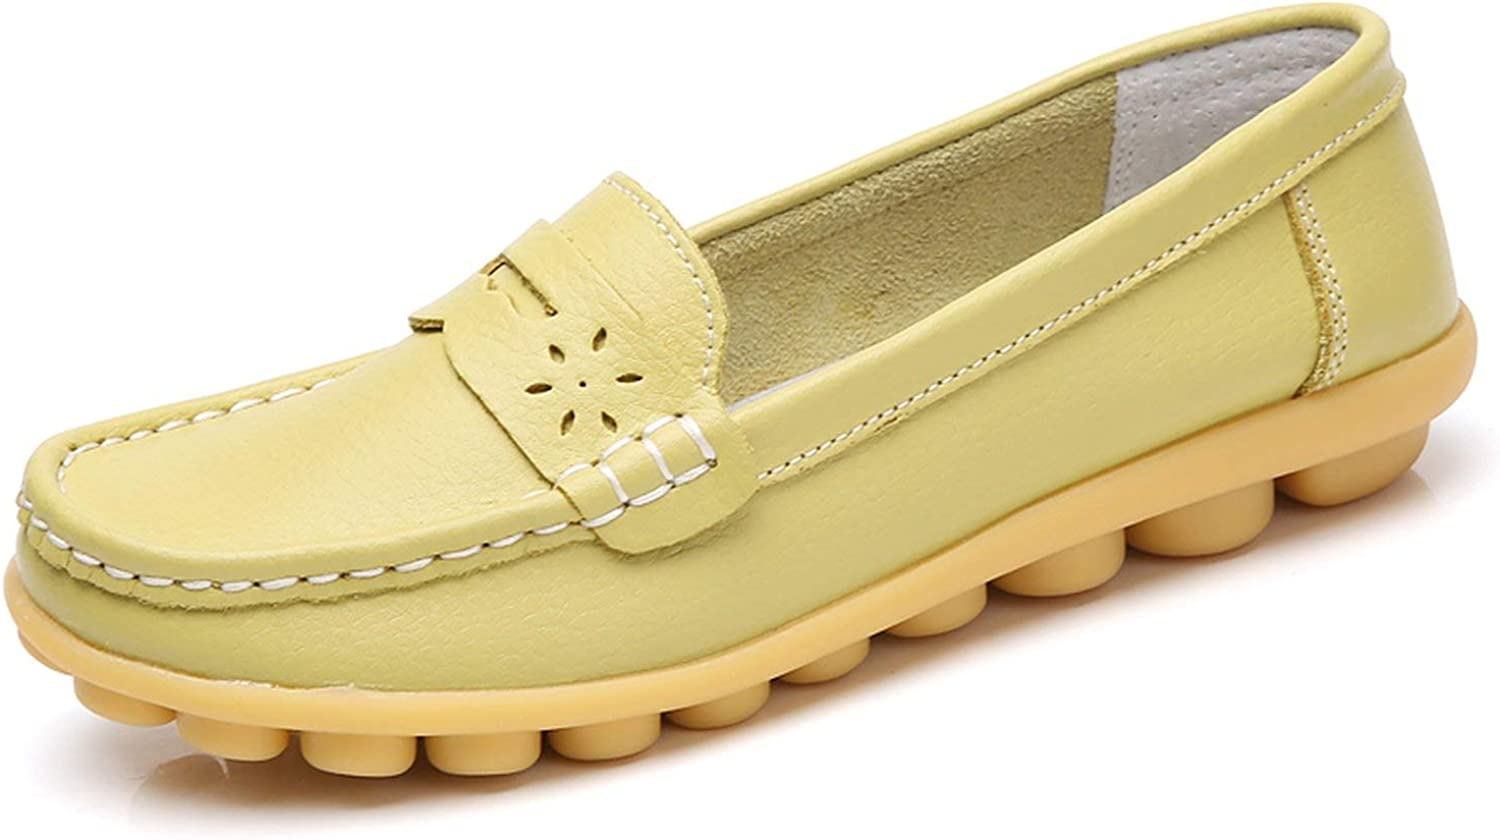 Crazy-shop Women Flats Casual Leather shoes Soft Slip On Flat Loafers